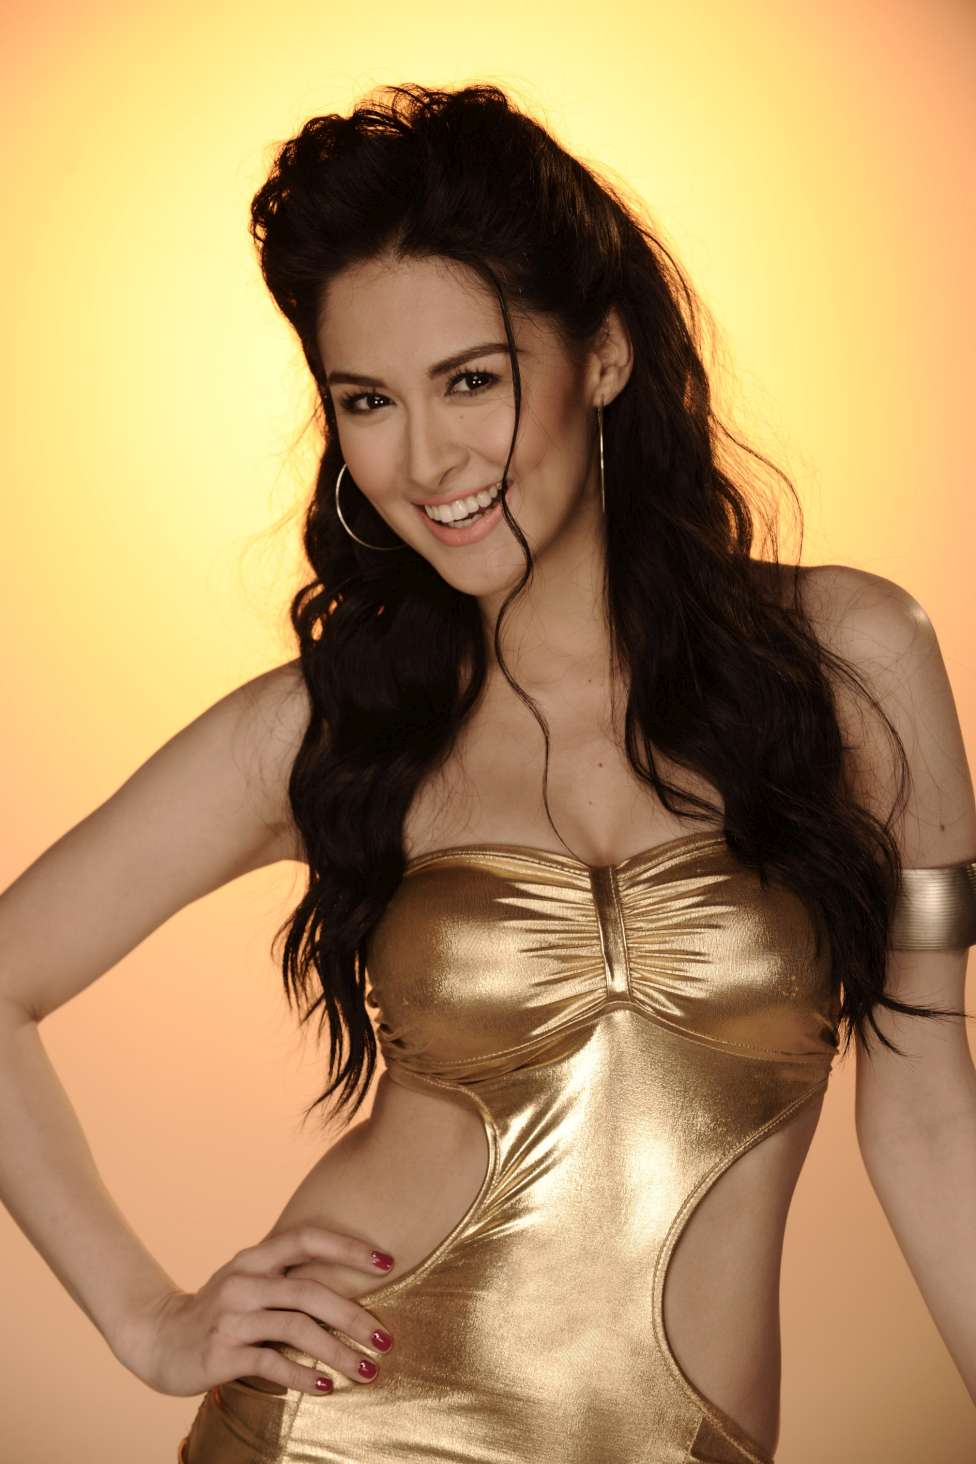 Marian Rivera Fhm 14th Anniversary Cover Girl Photos - Imagez co